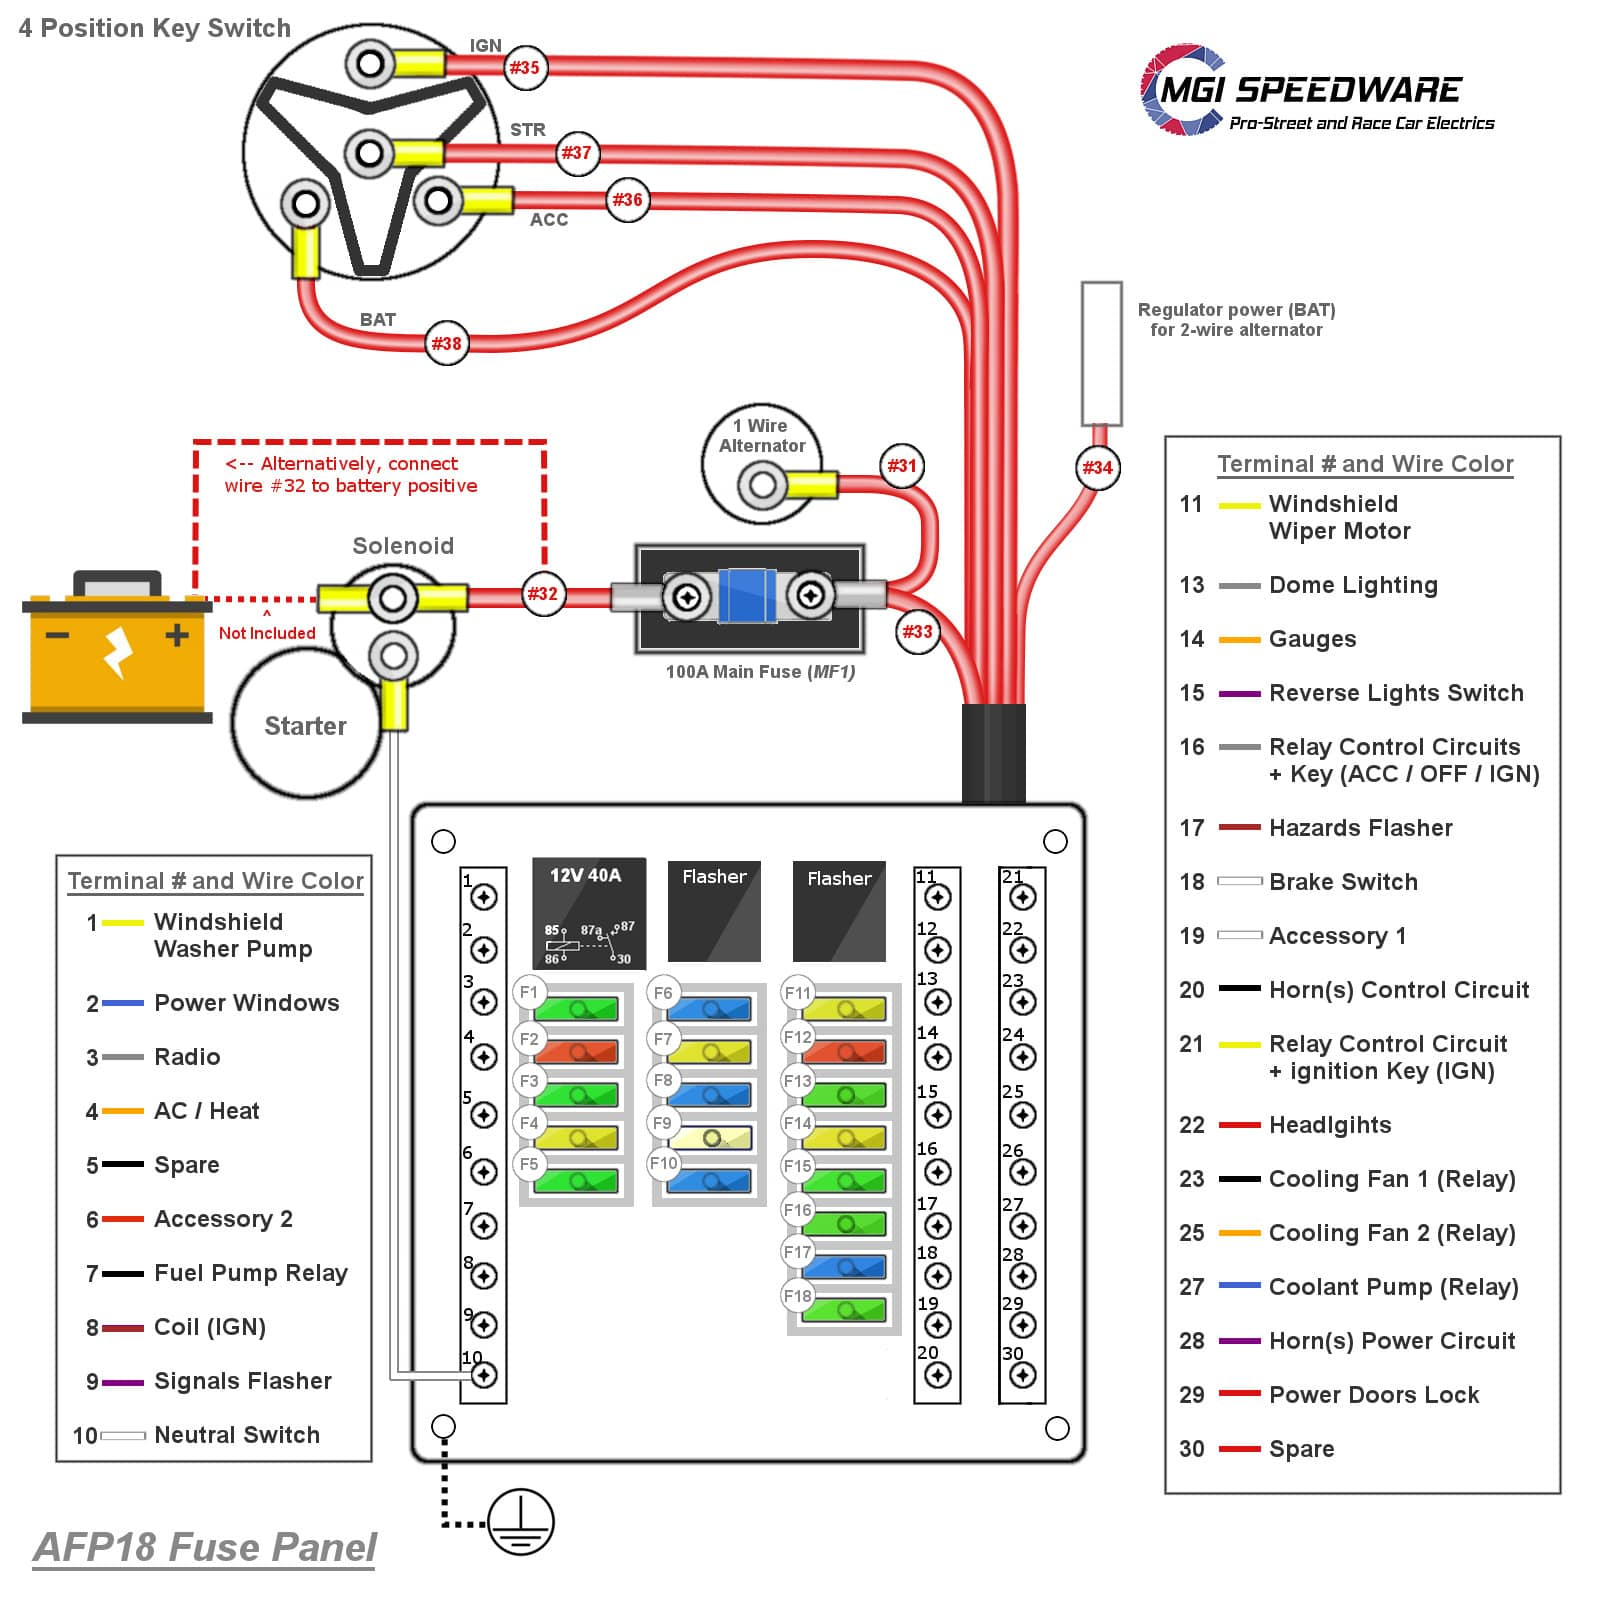 Universal Automotive Fuse Box With 18 Fuses Mgi Speedware Aftermarket Relay Afp18 Wiring Diagram